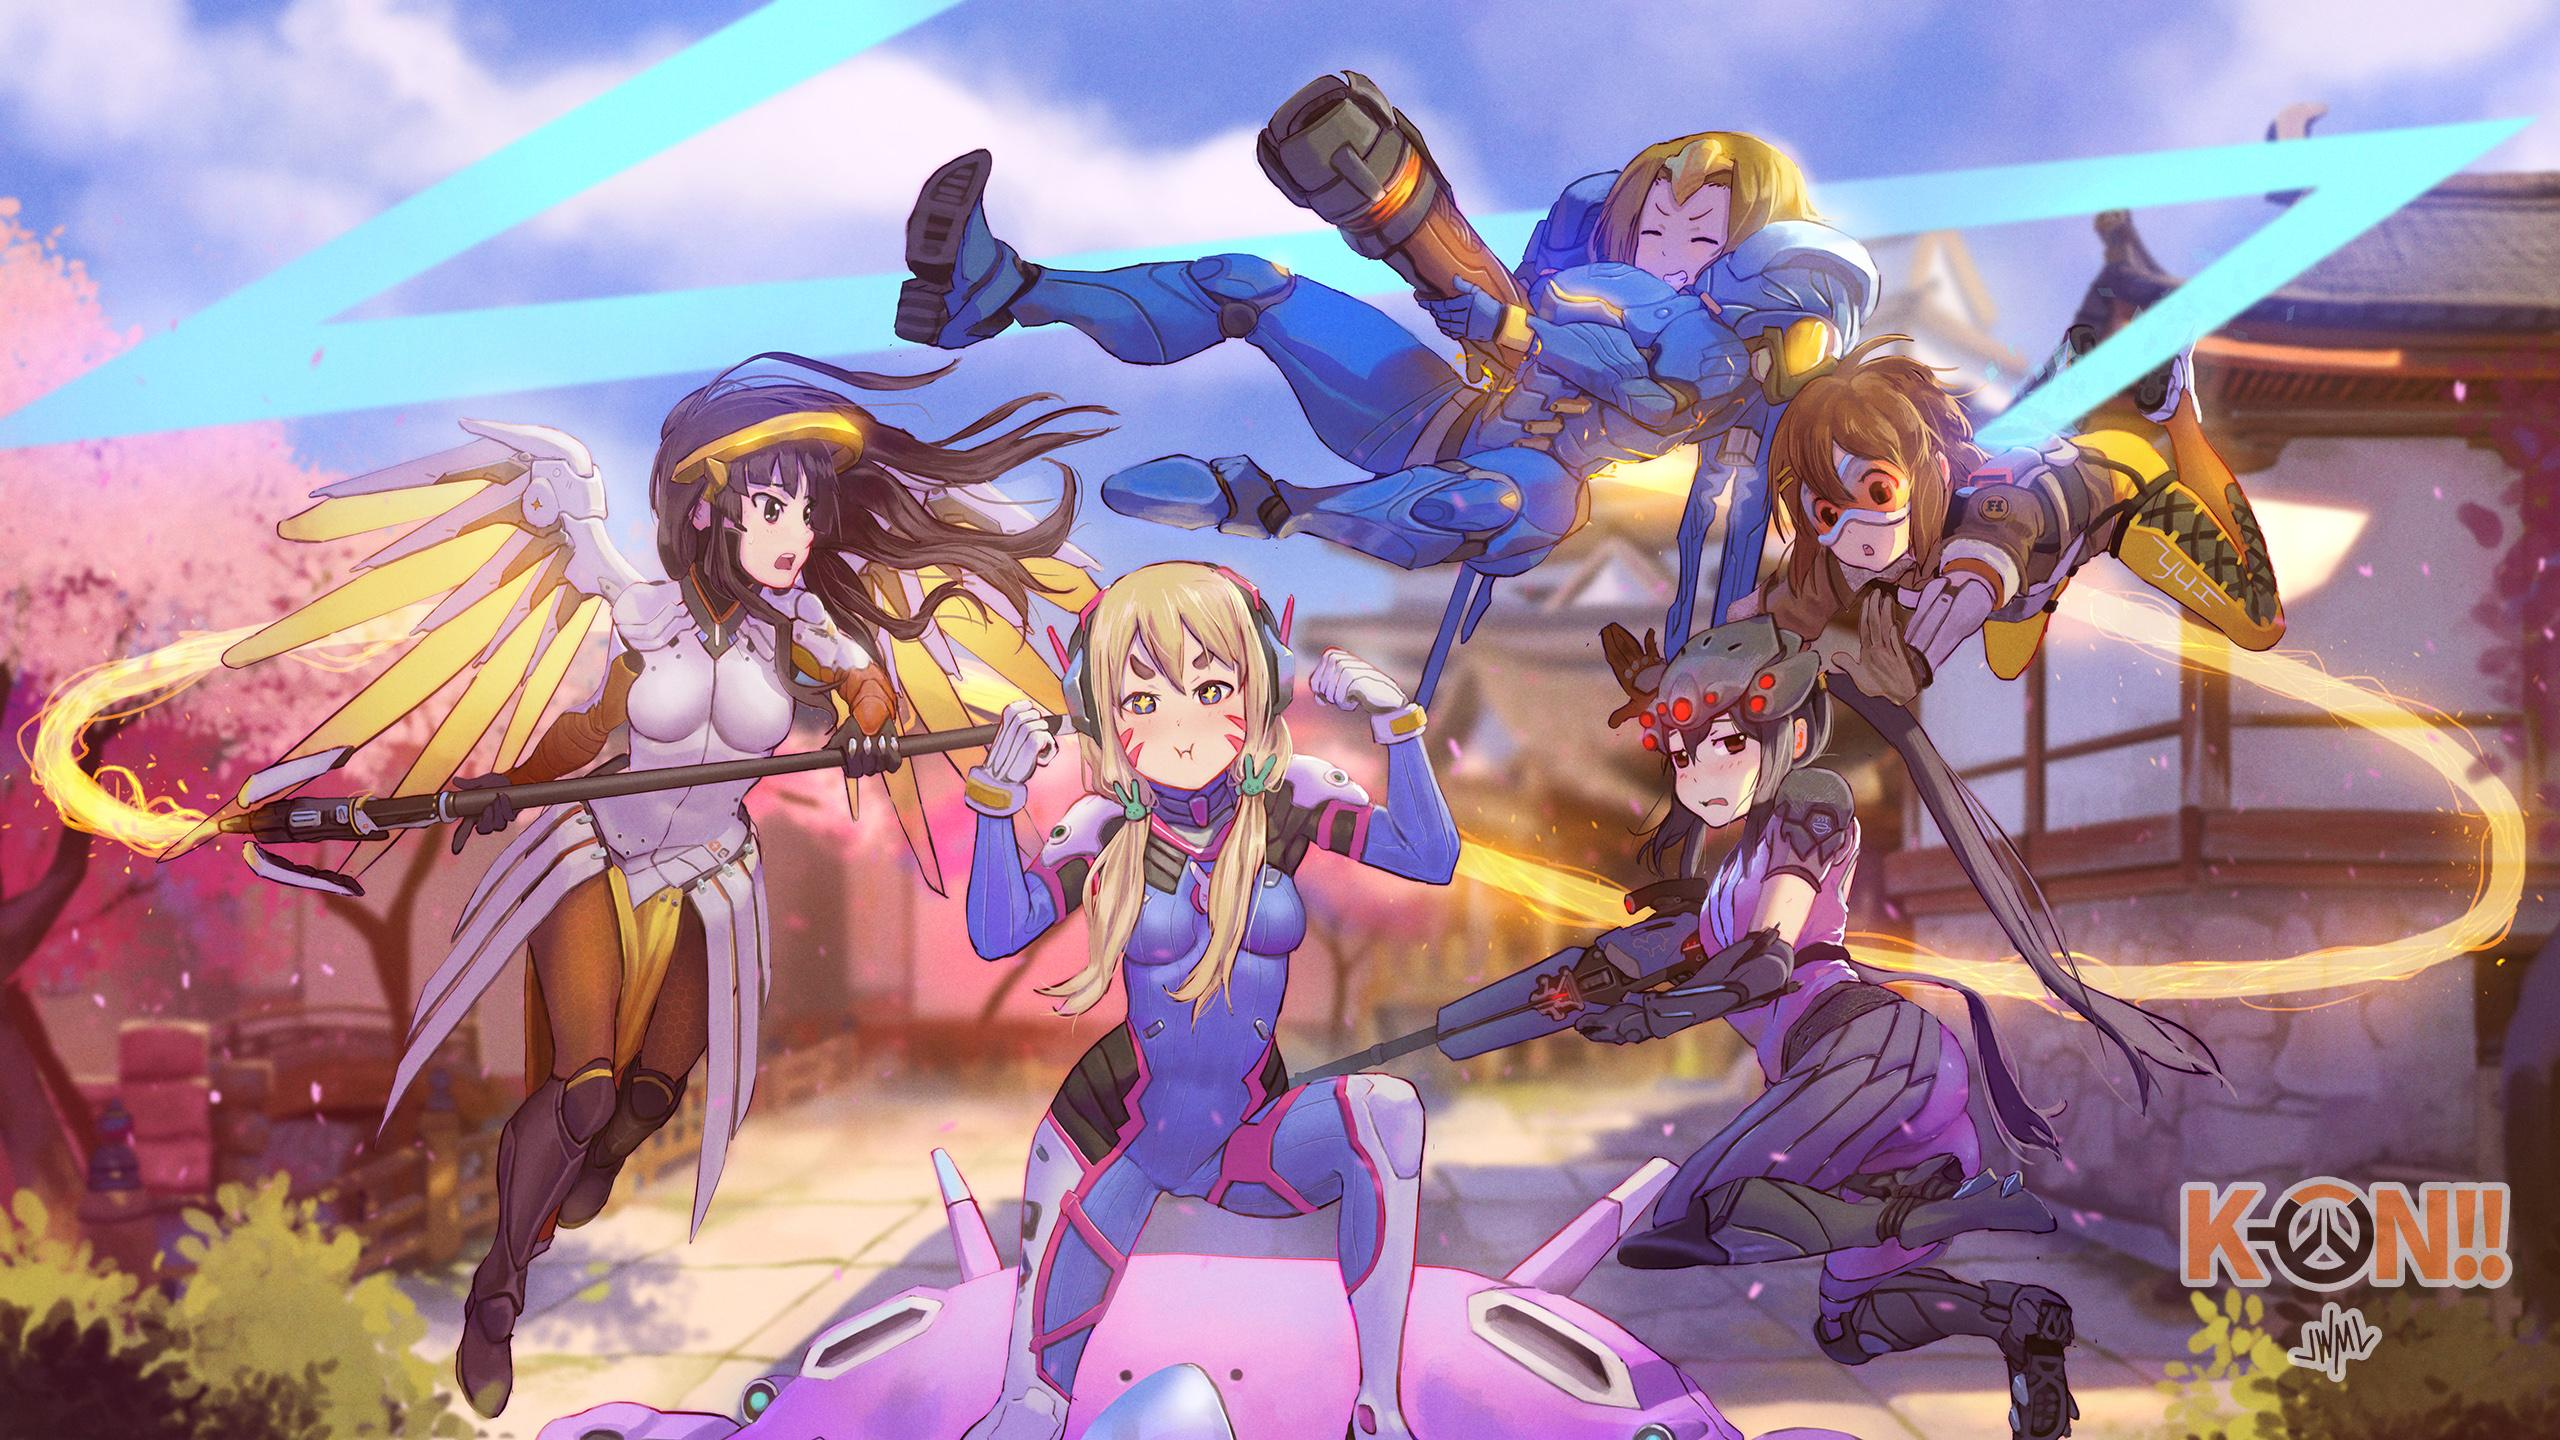 Download Chibi Overwatch Wallpaper Hd Backgrounds Download